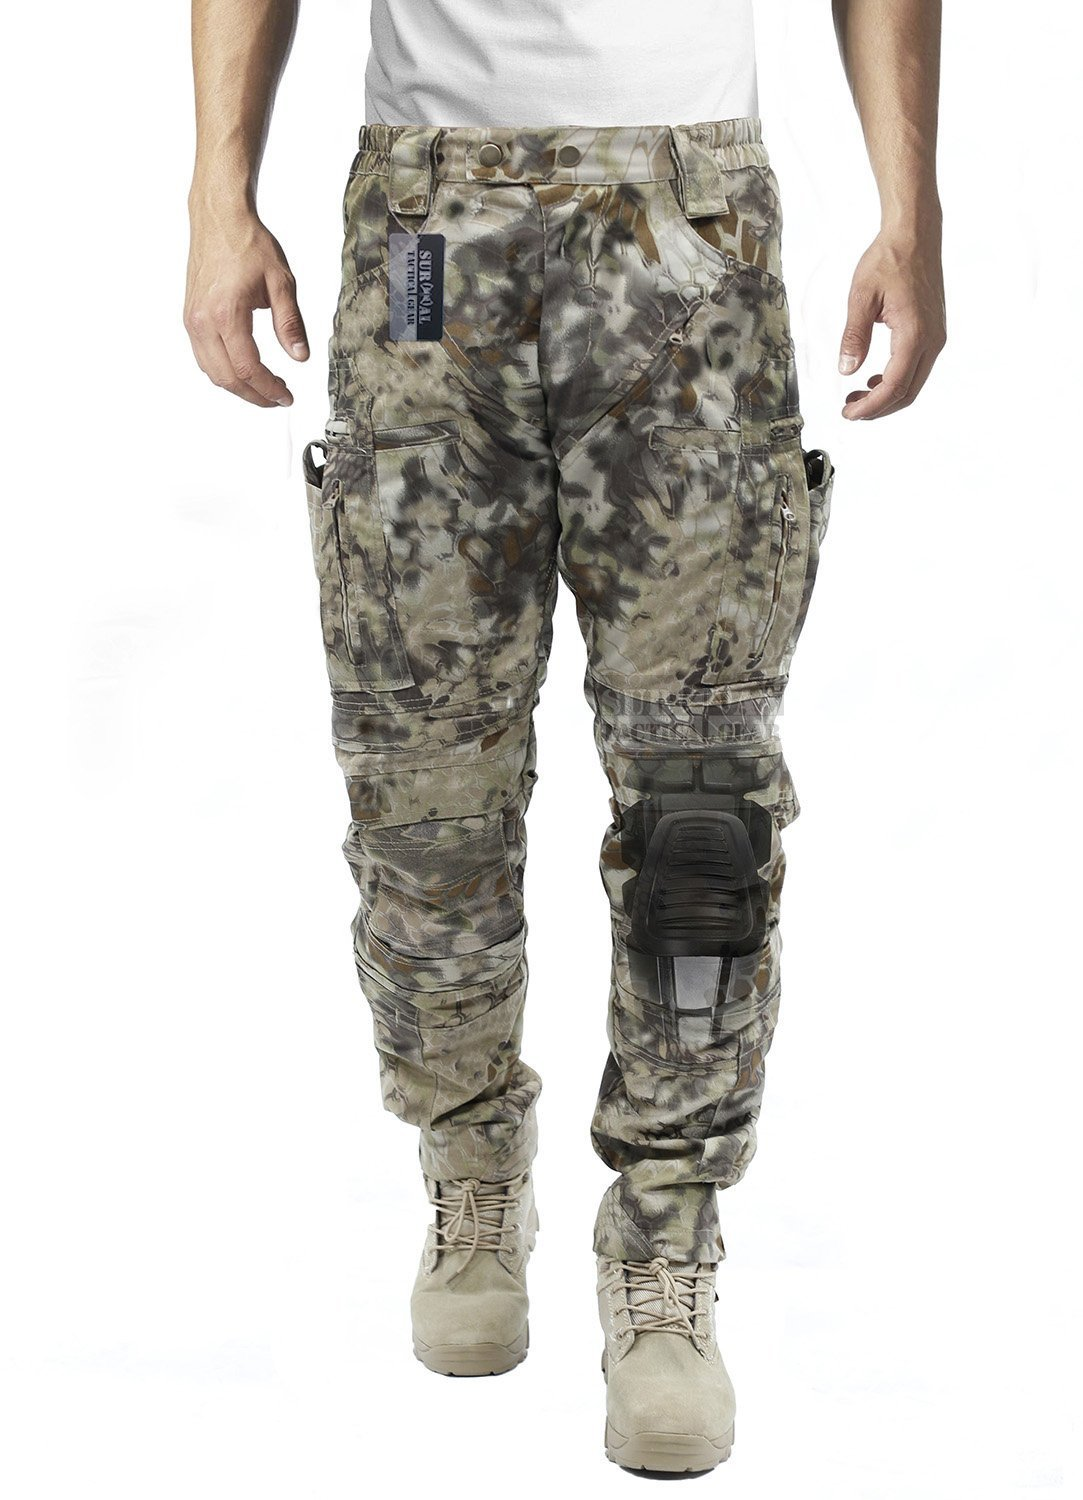 Survival Tactical Gear Men's Airsoft Wargame Tactical Pants with Knee Protection System & Air Circulation System (Nomad Camo, S) by Survival Tactical Gear